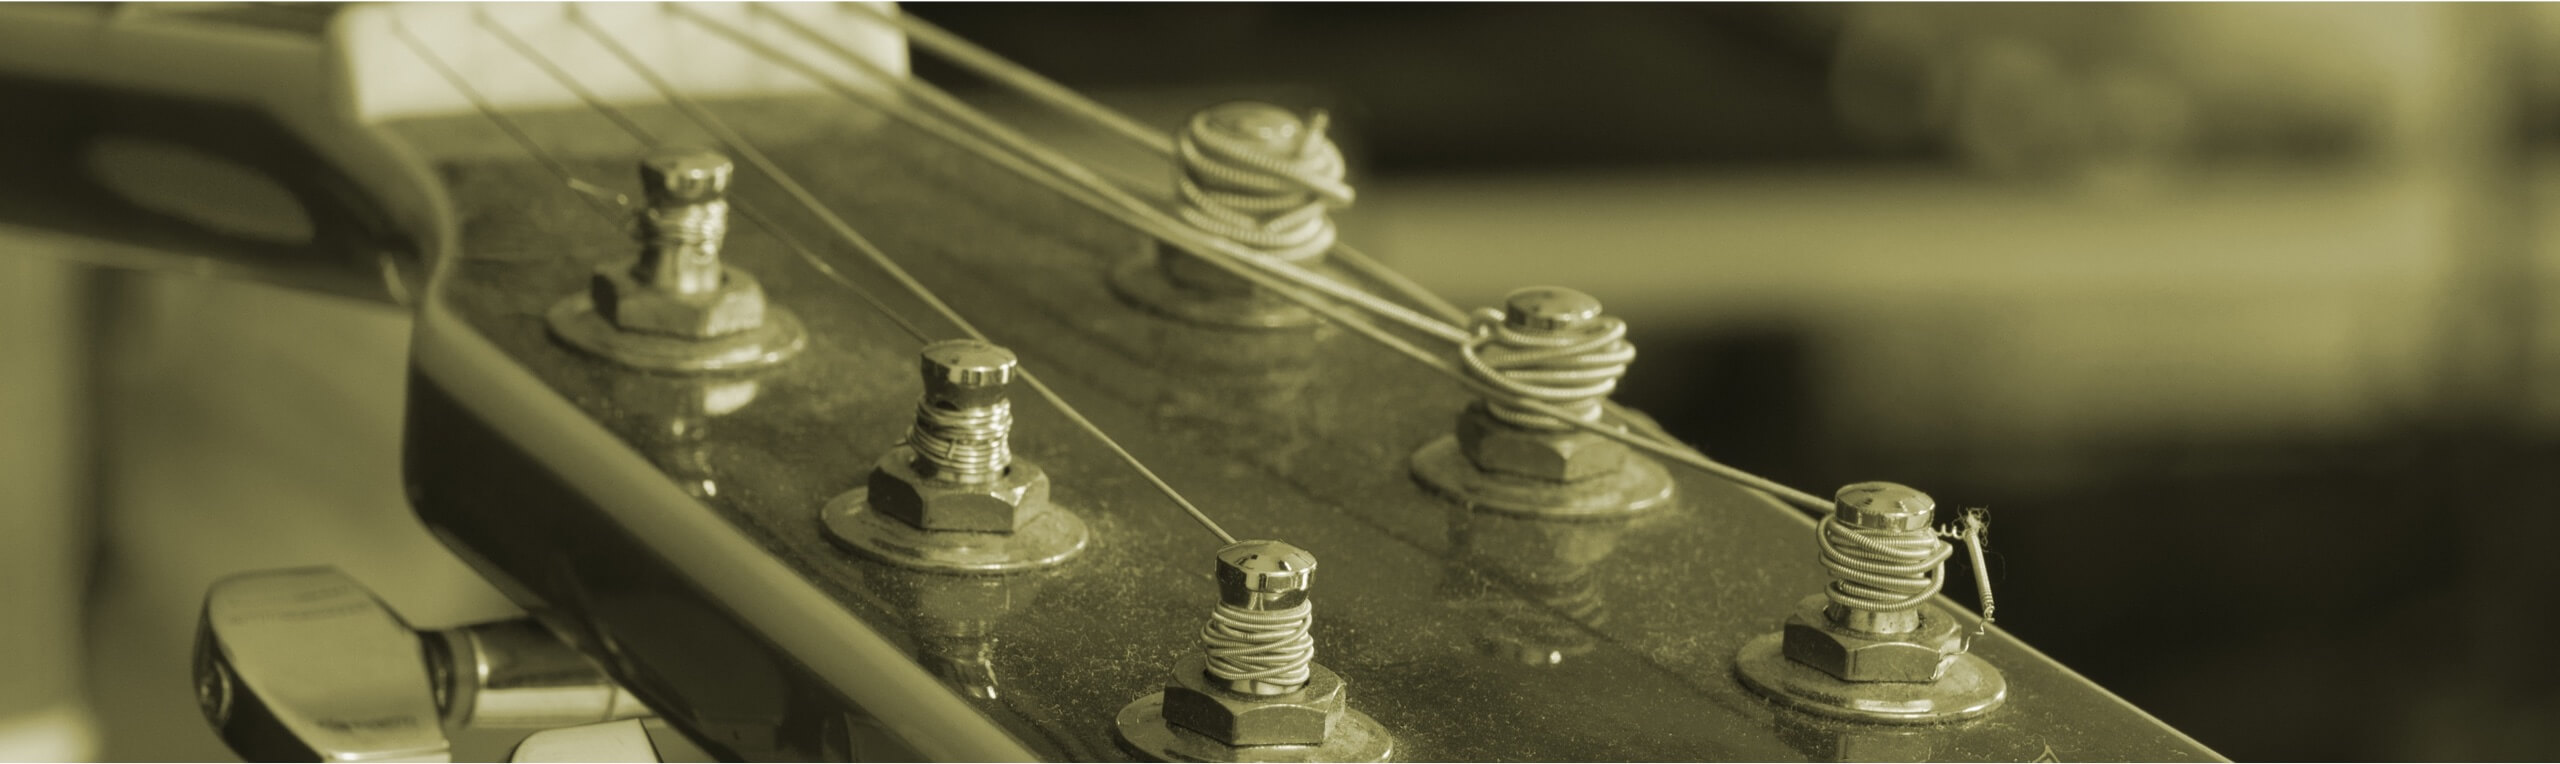 Strings tuning